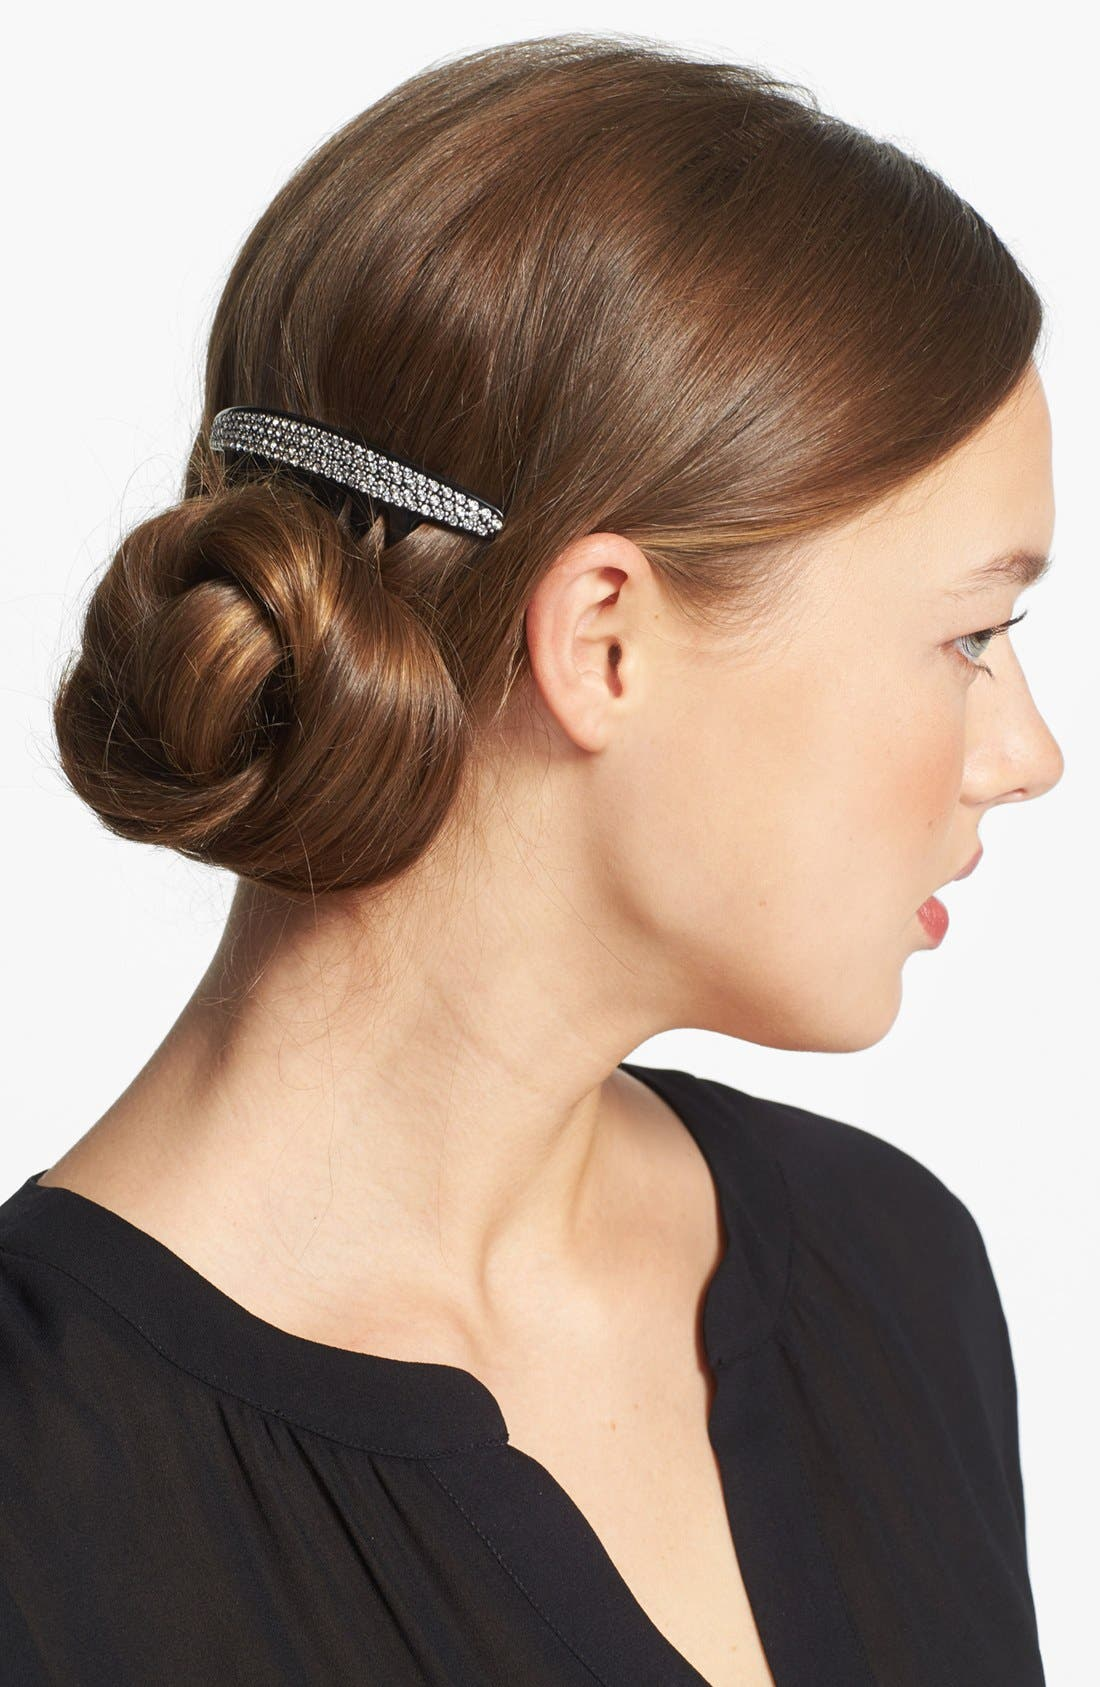 Main Image - France Luxe 'Swarovski Pavé' French Twist Comb